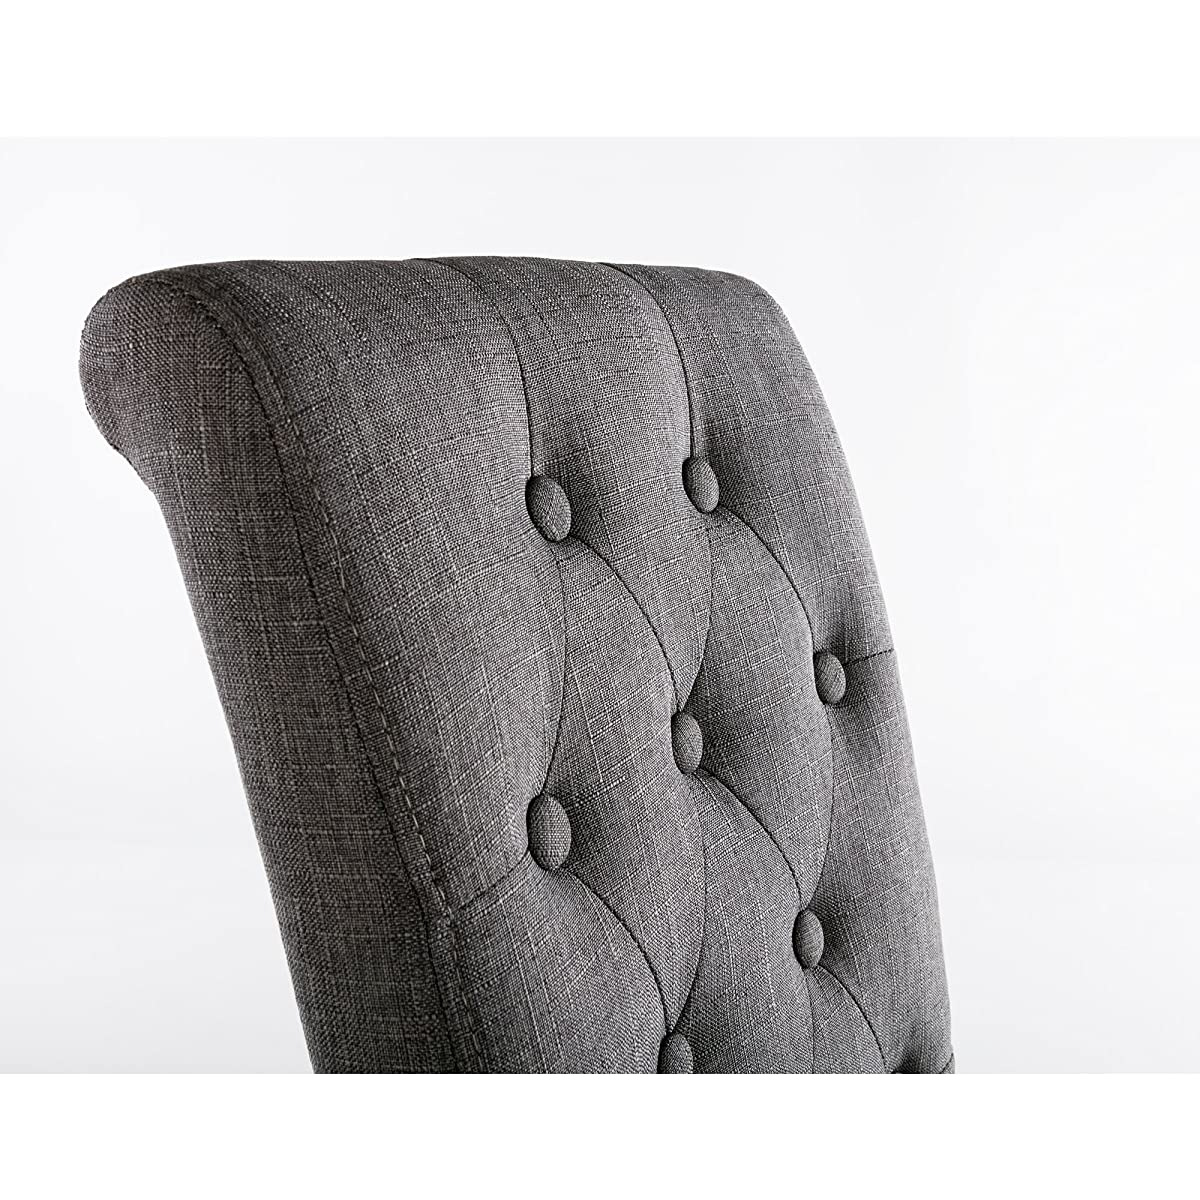 LSSBOUGHT Button-tufted Upholstered Fabric Dining Chairs with Solid Wood Legs, Set of 2 (Gray)